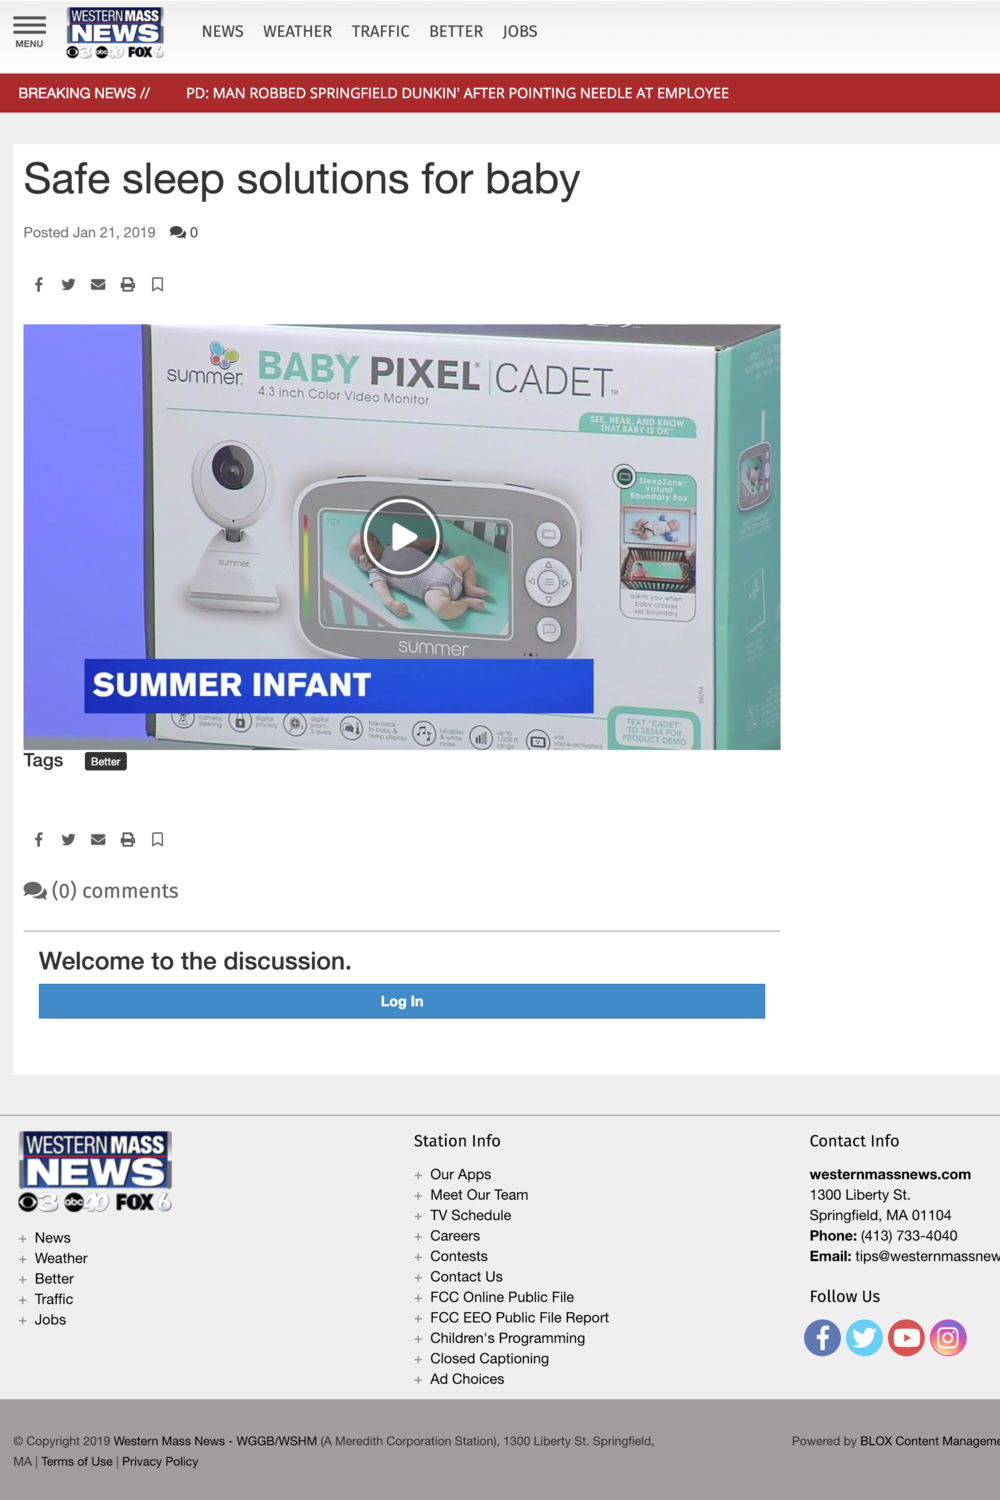 2019.01.21_WGGB-TV (ABC 40), WSHM-TV (CBS 3) Springfield, Better Western Mass Online_Summer Infant Baby Pixel Cadet Video Monitor_cropped 2x3.png